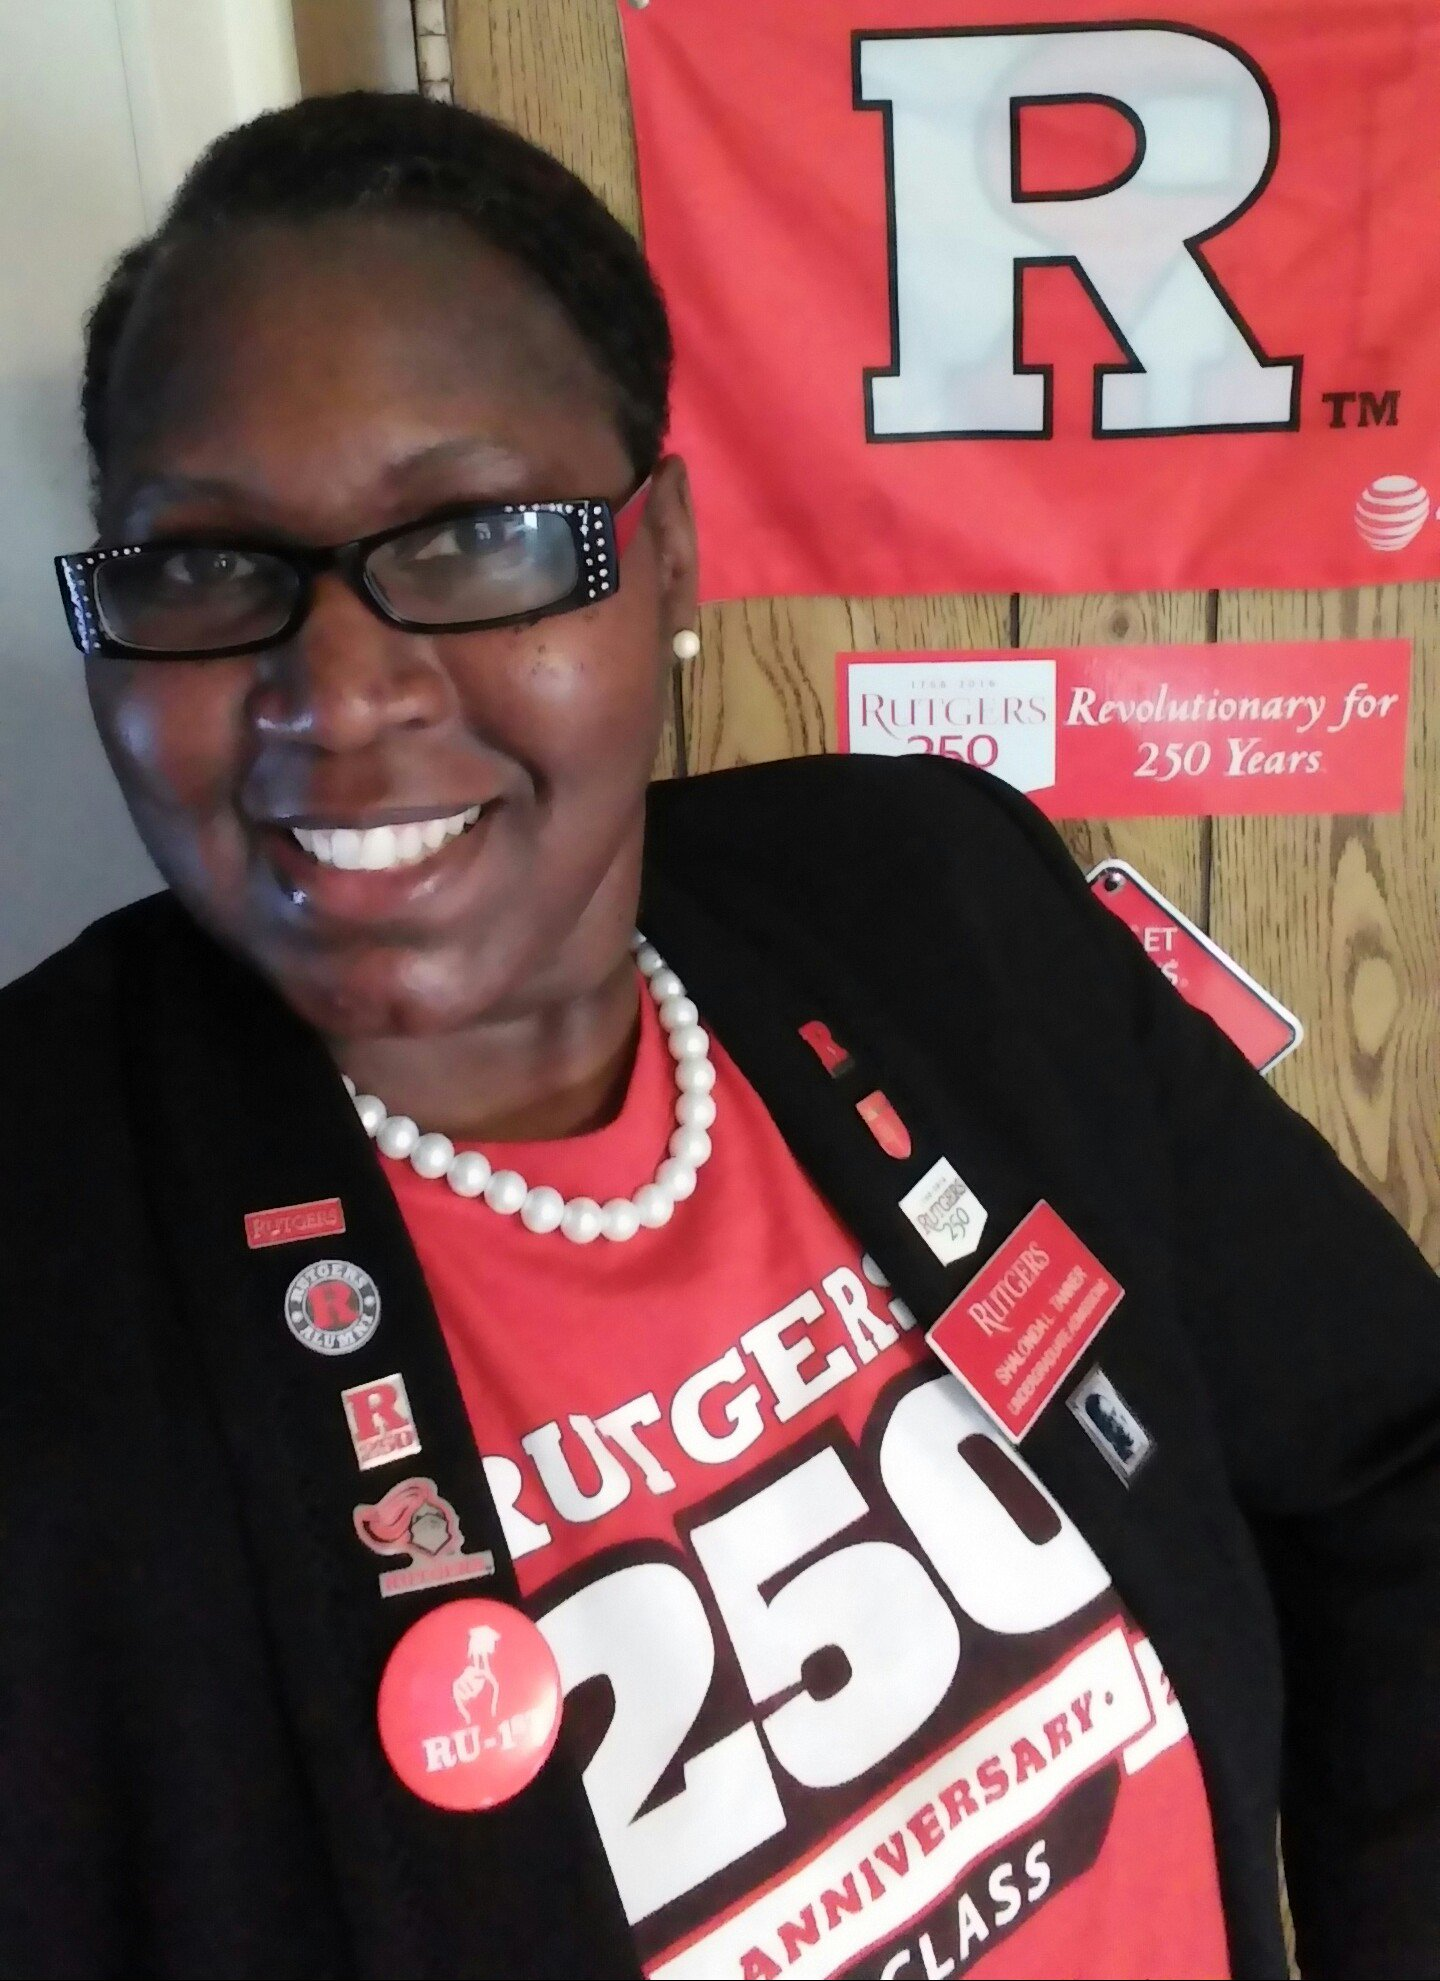 Happy Birthday @RutgersU. Charter Day #Rutgers250. Am I wearing too many #Rutgers pins? #RutgersProud @rutgersalumni https://t.co/KQ8Rl5y9uR